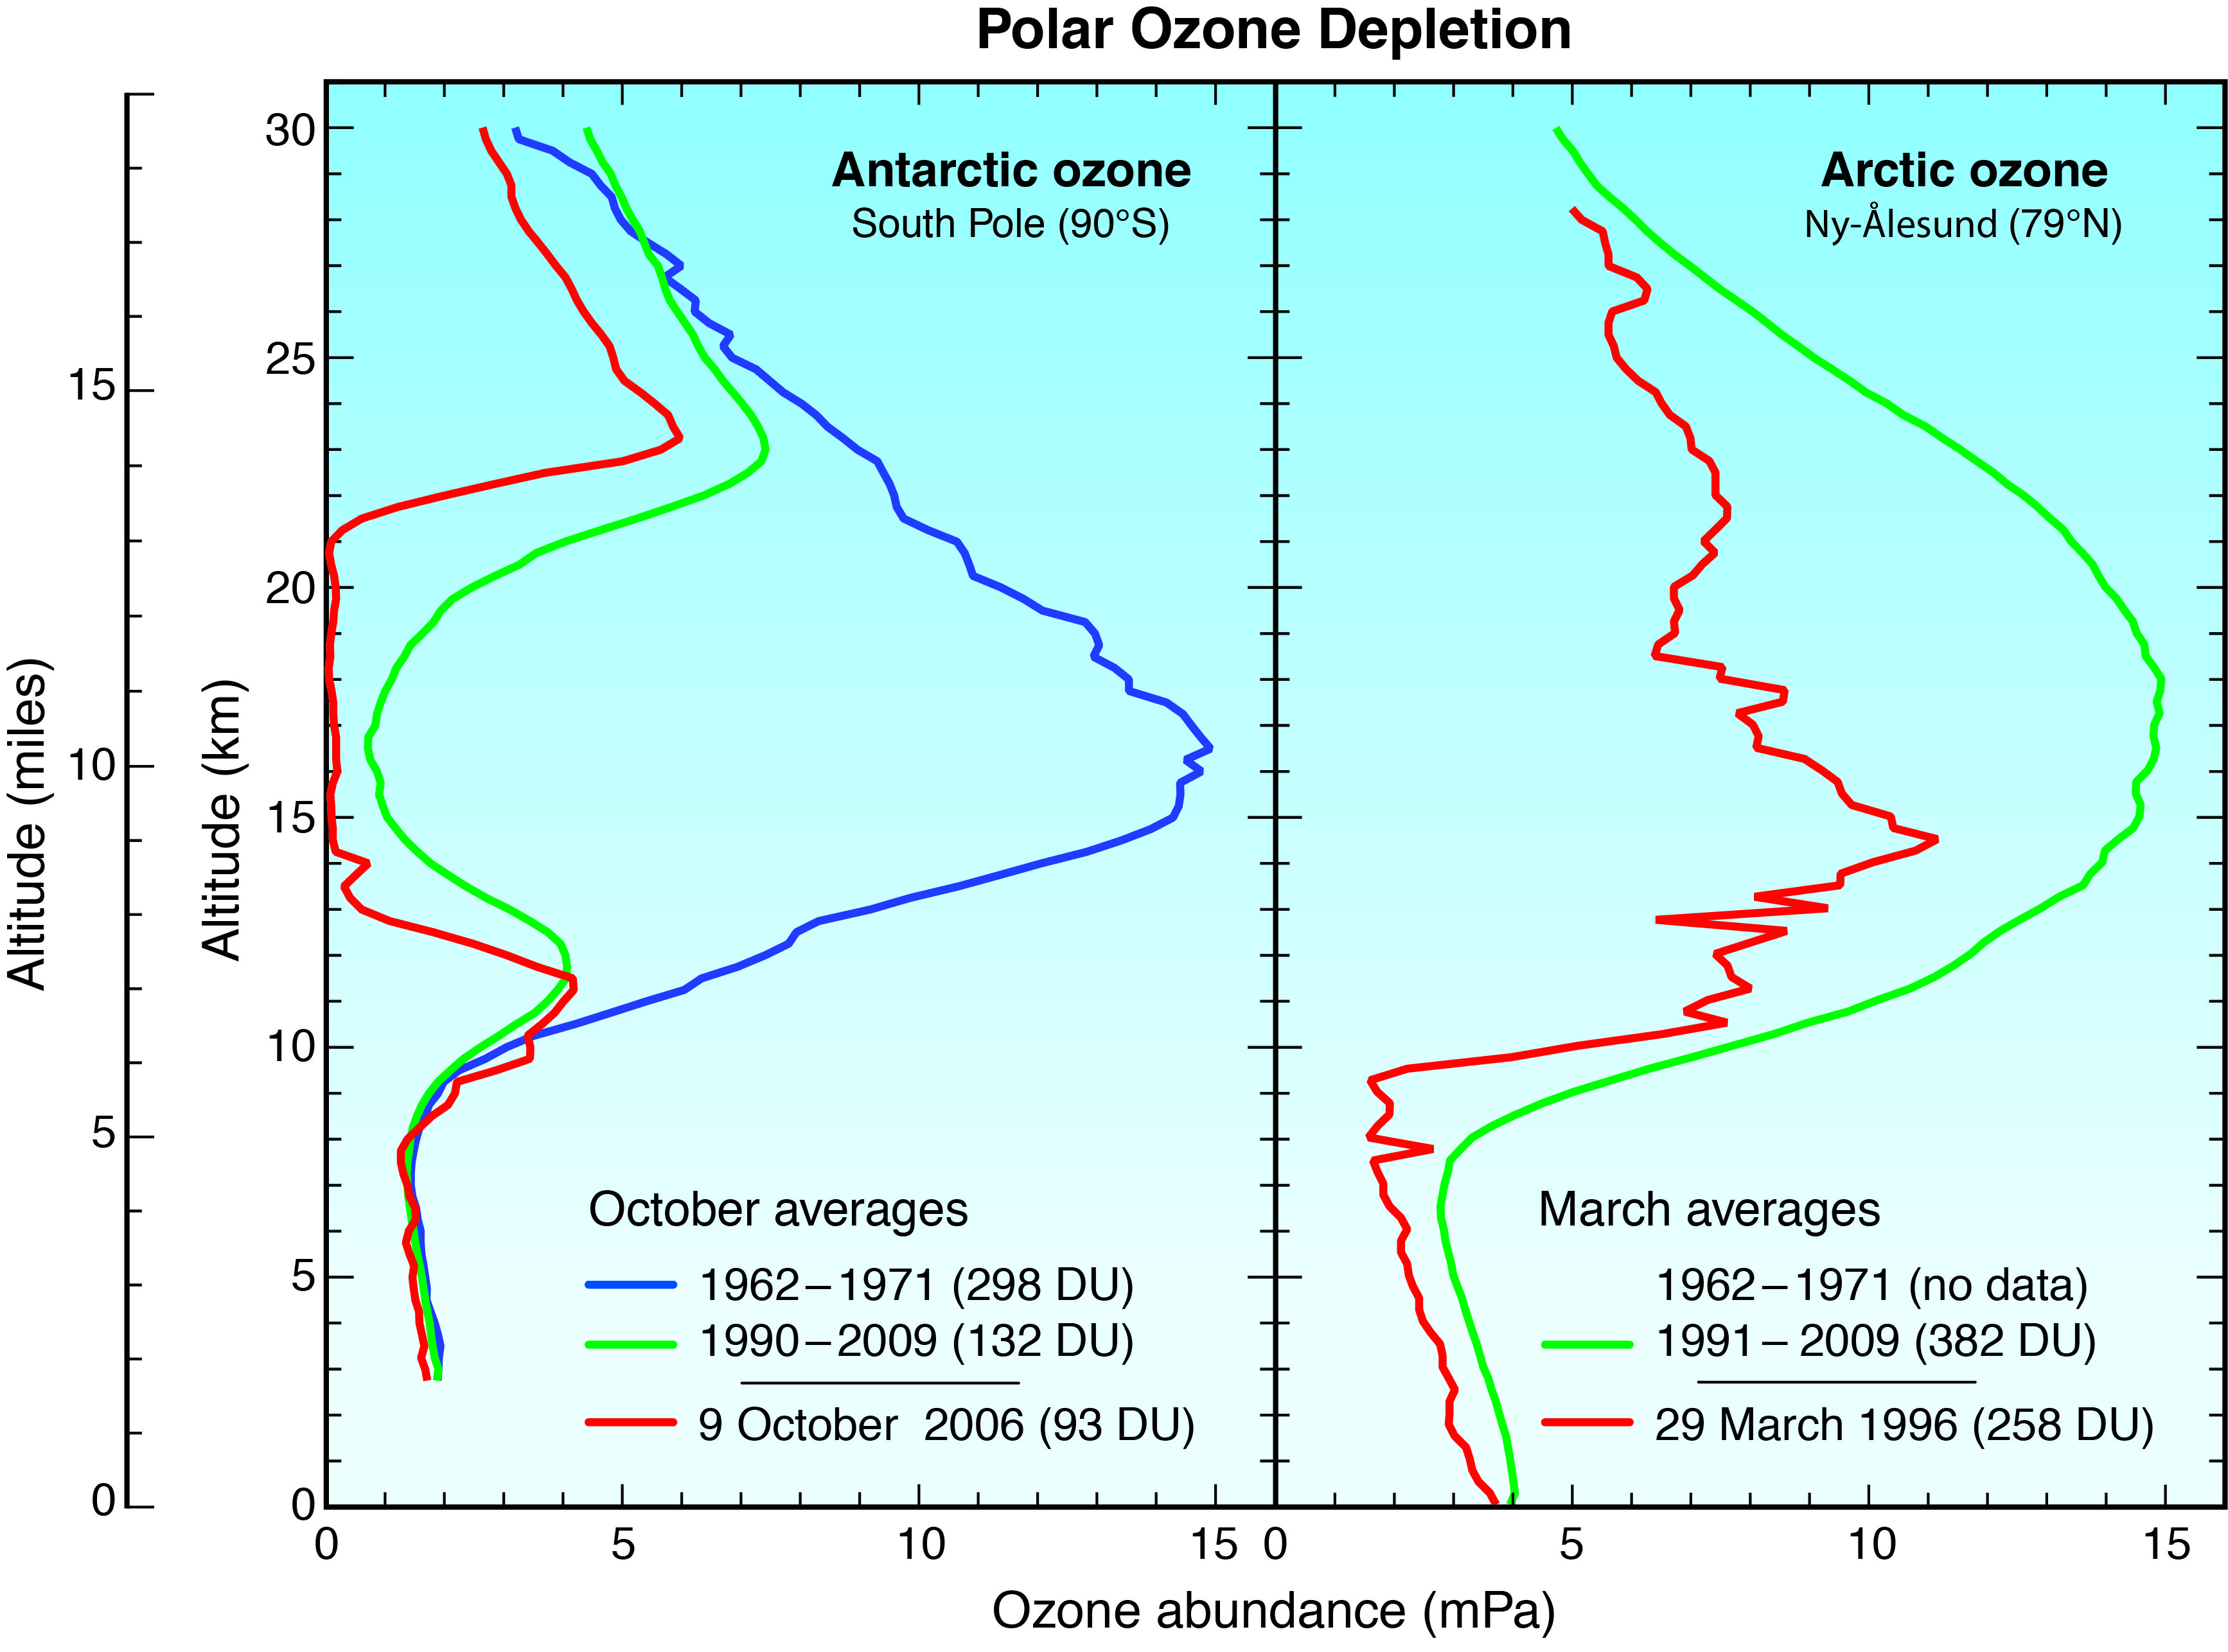 Scientific assessment of ozone depletion 2010 twenty questions stratospheric ozone depletion gumiabroncs Choice Image